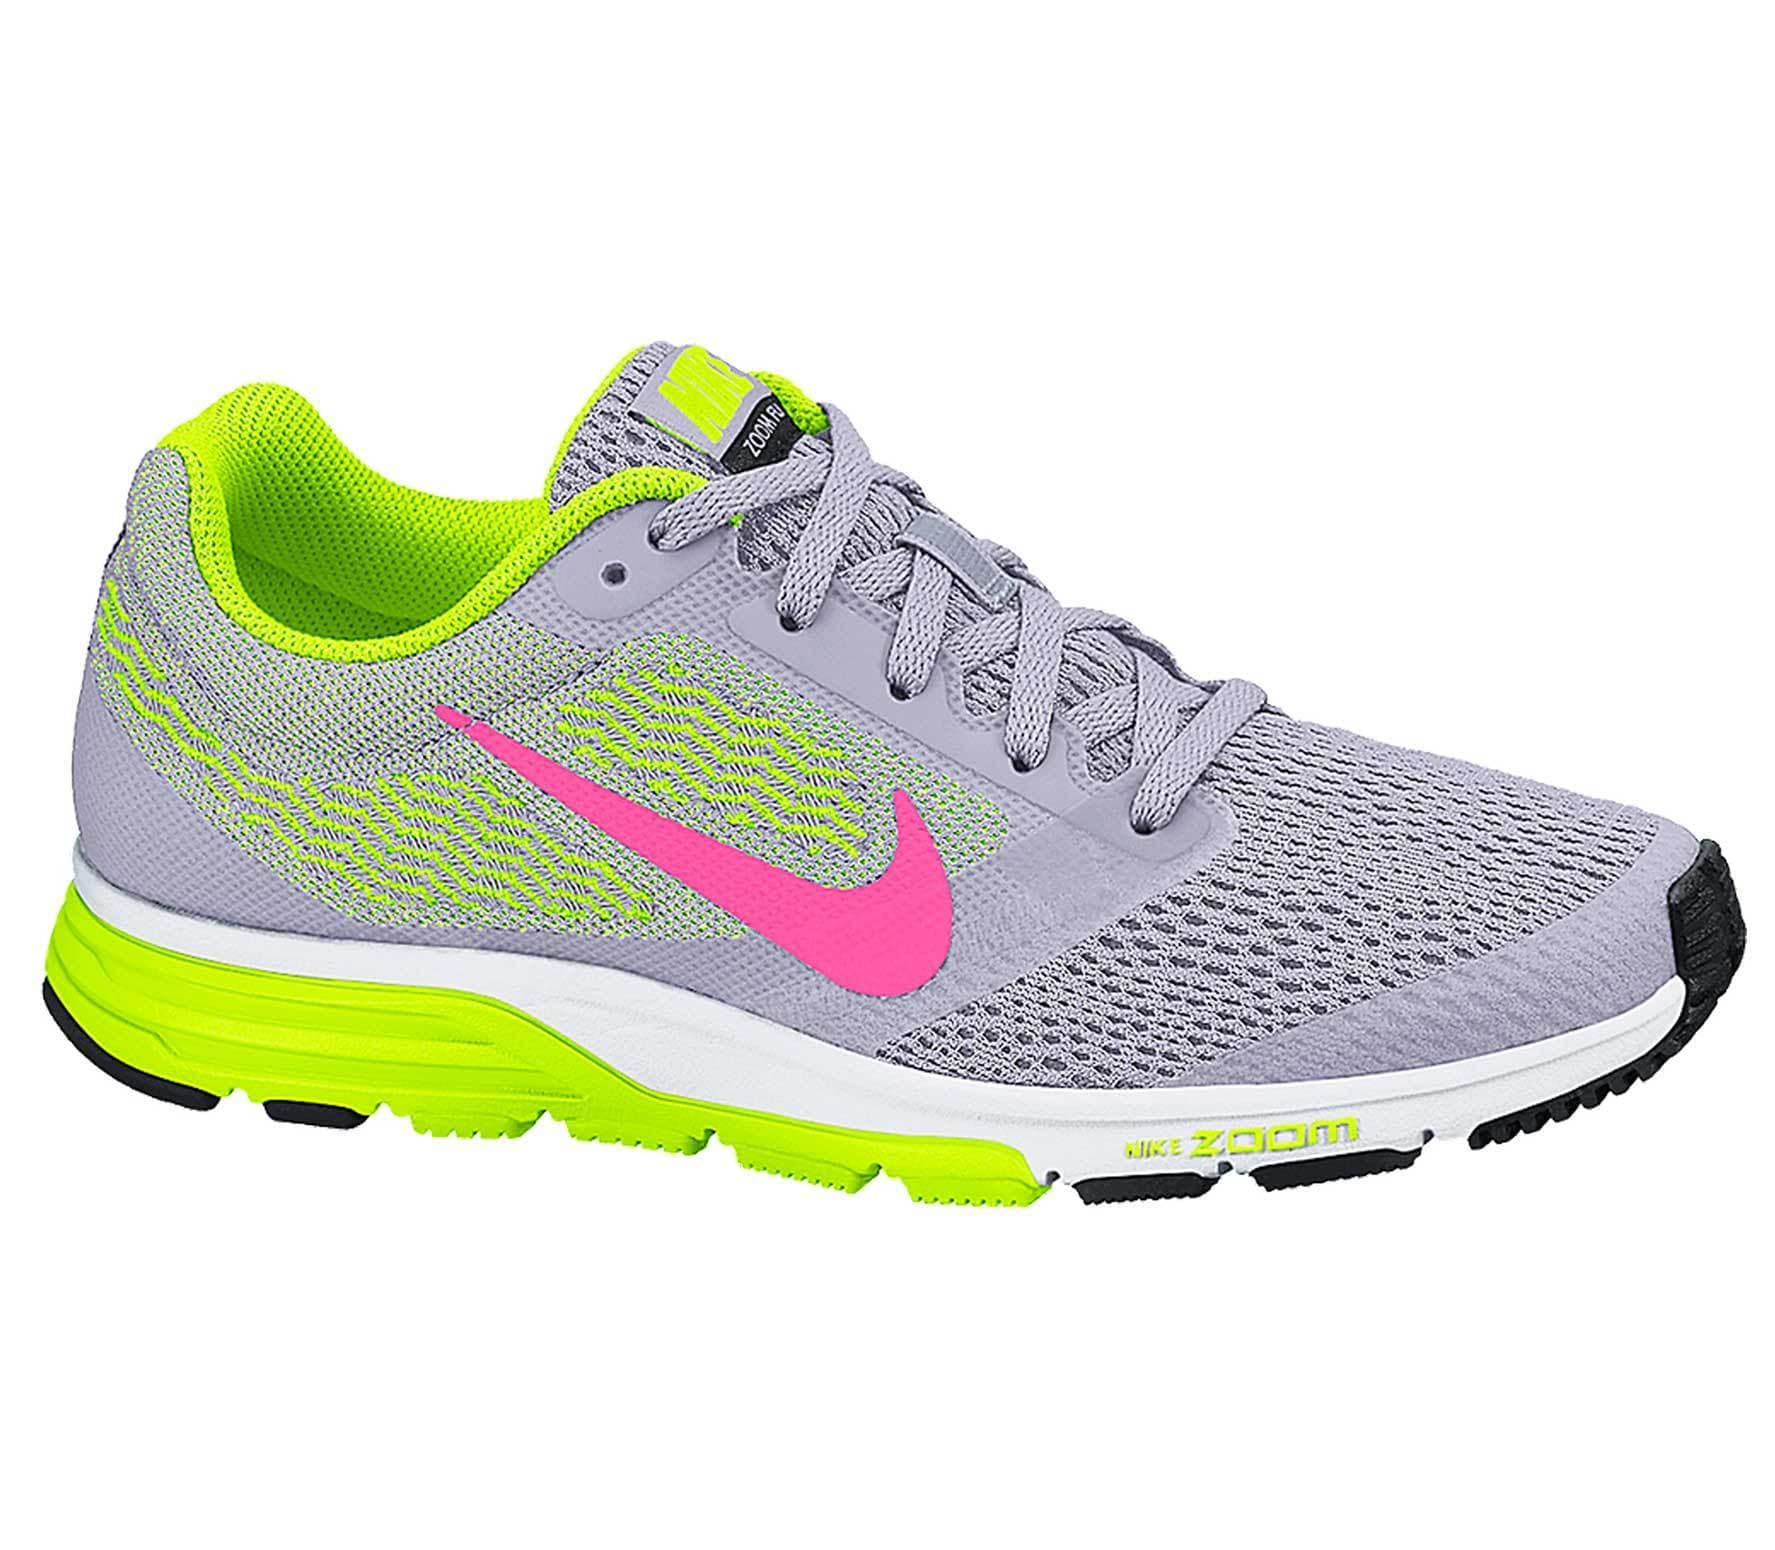 9f2c96a71c55 Nike - Zoom Fly 2 women s running shoes (grey green) - buy it at the ...